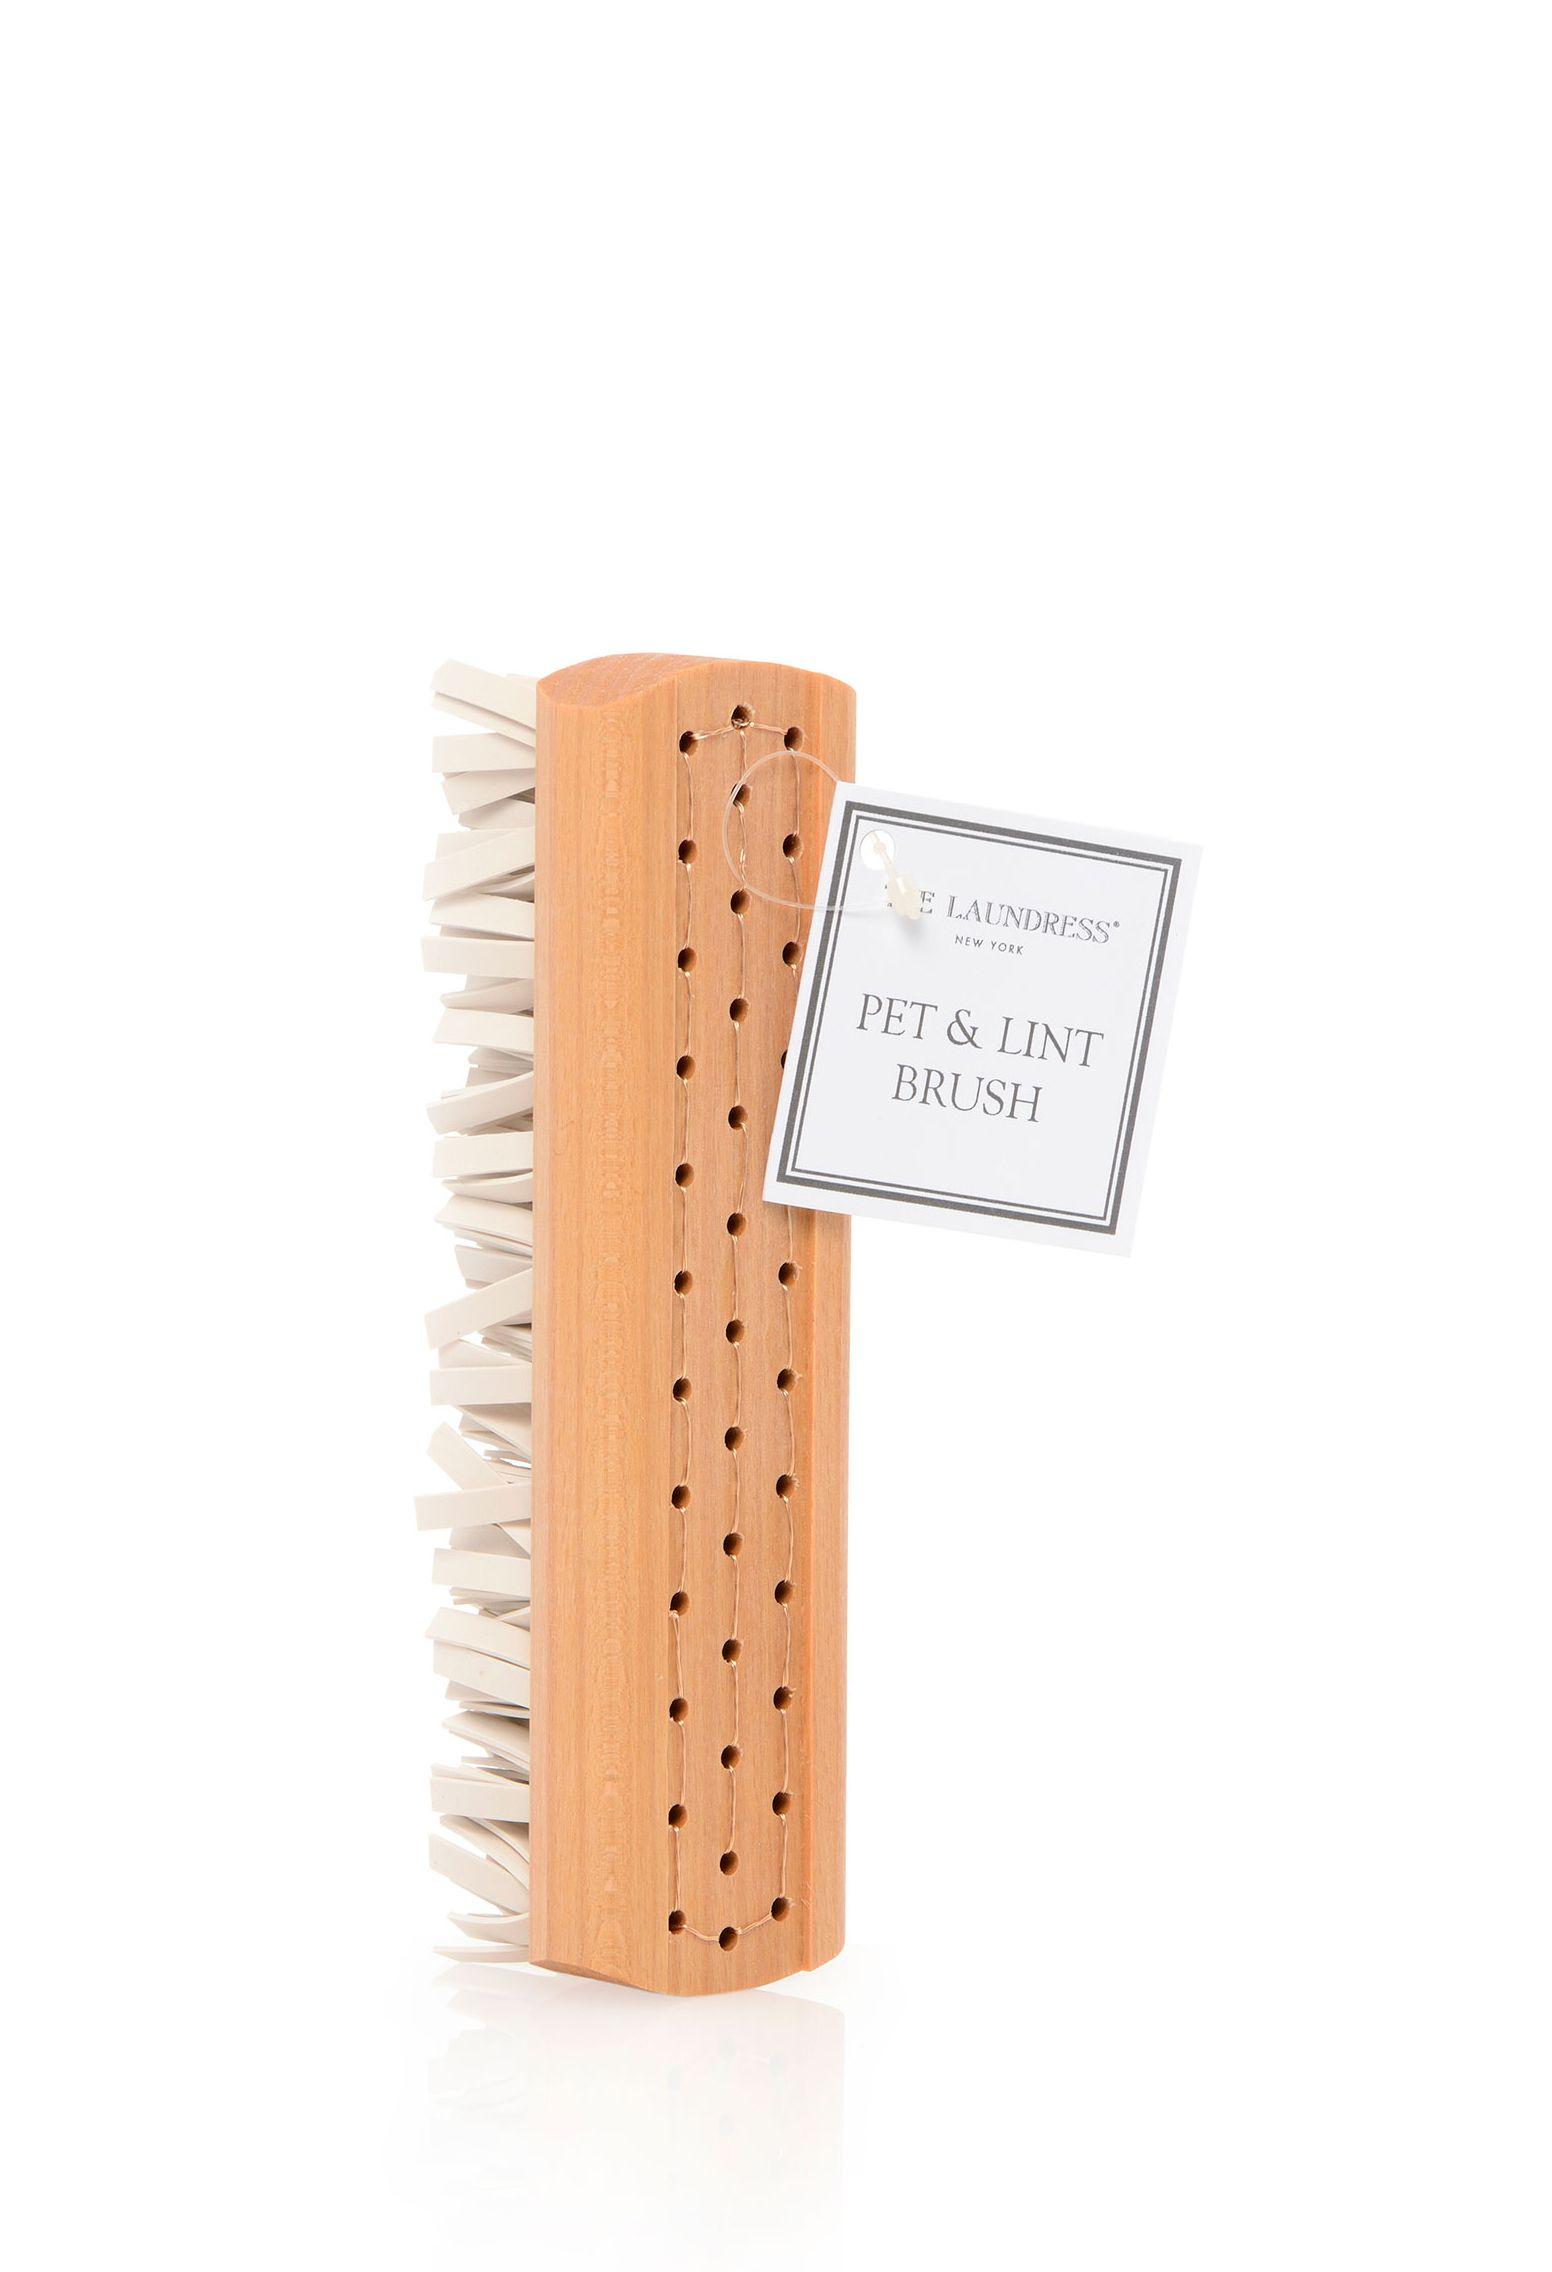 Pet & Lint Brush Pet hair removal, Remove makeup from